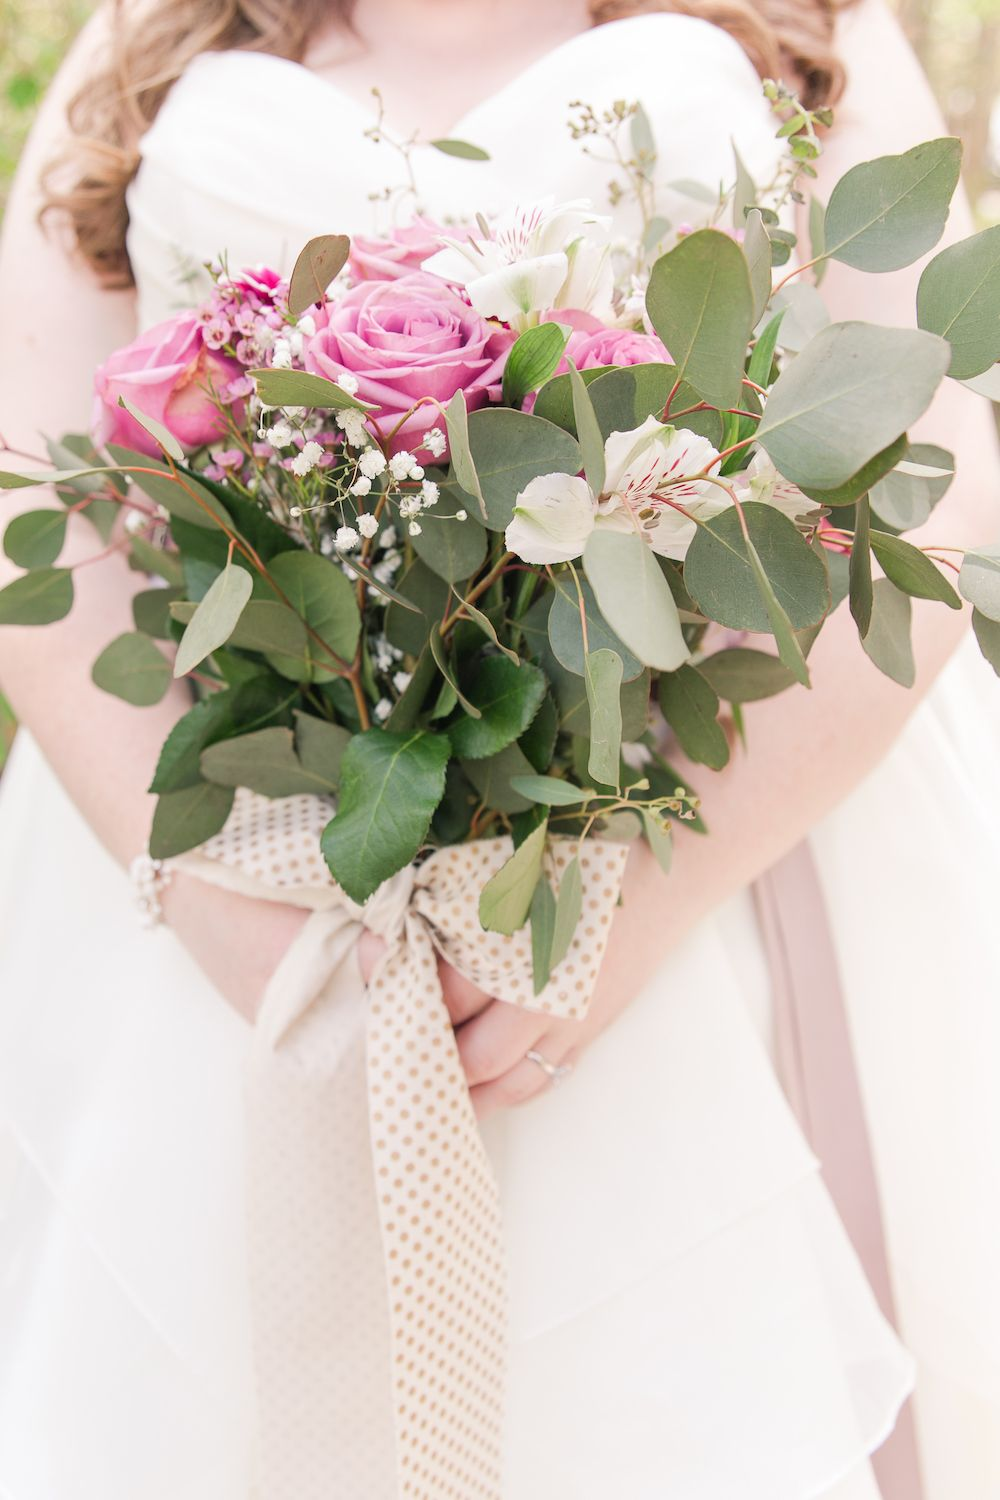 Bridal bouquet with silver dollar eucalyptus and pink roses